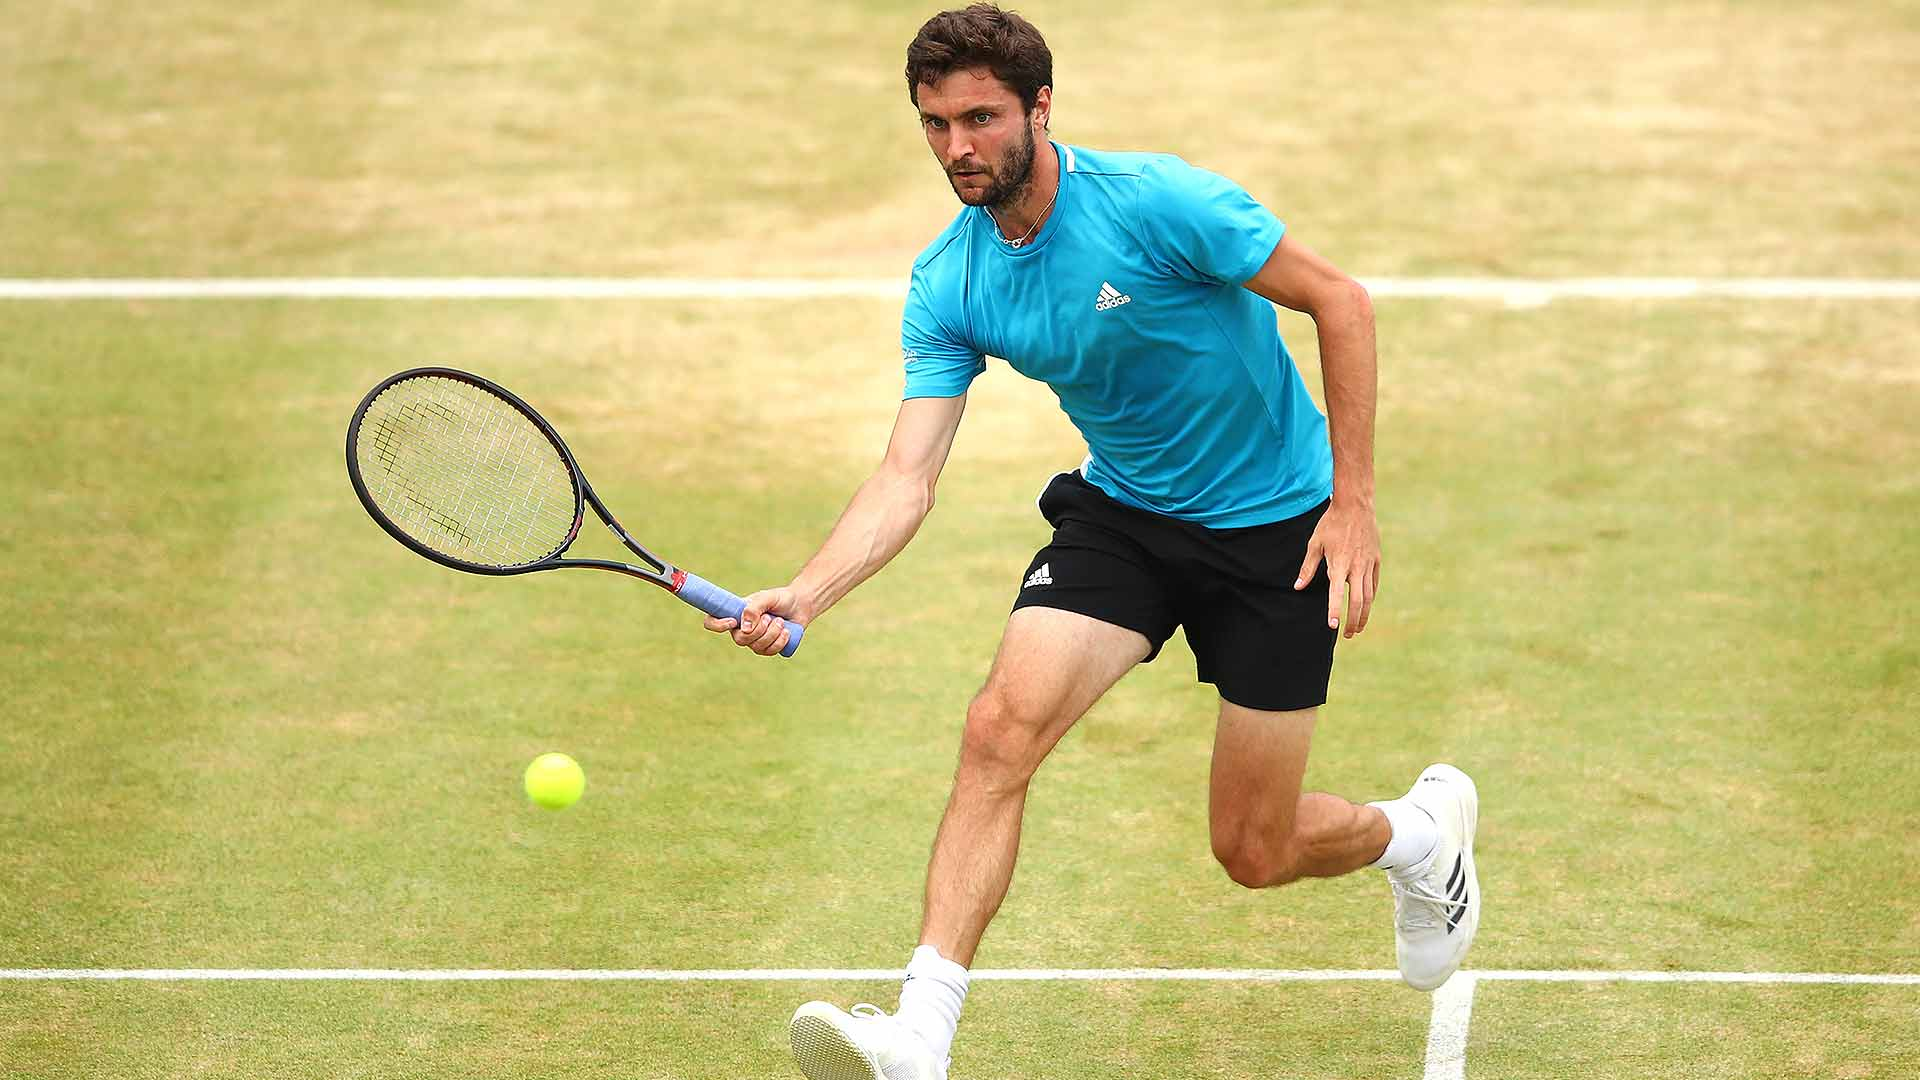 Gilles Simon wins again on Tuesday at the Nature Valley International in Eastbourne